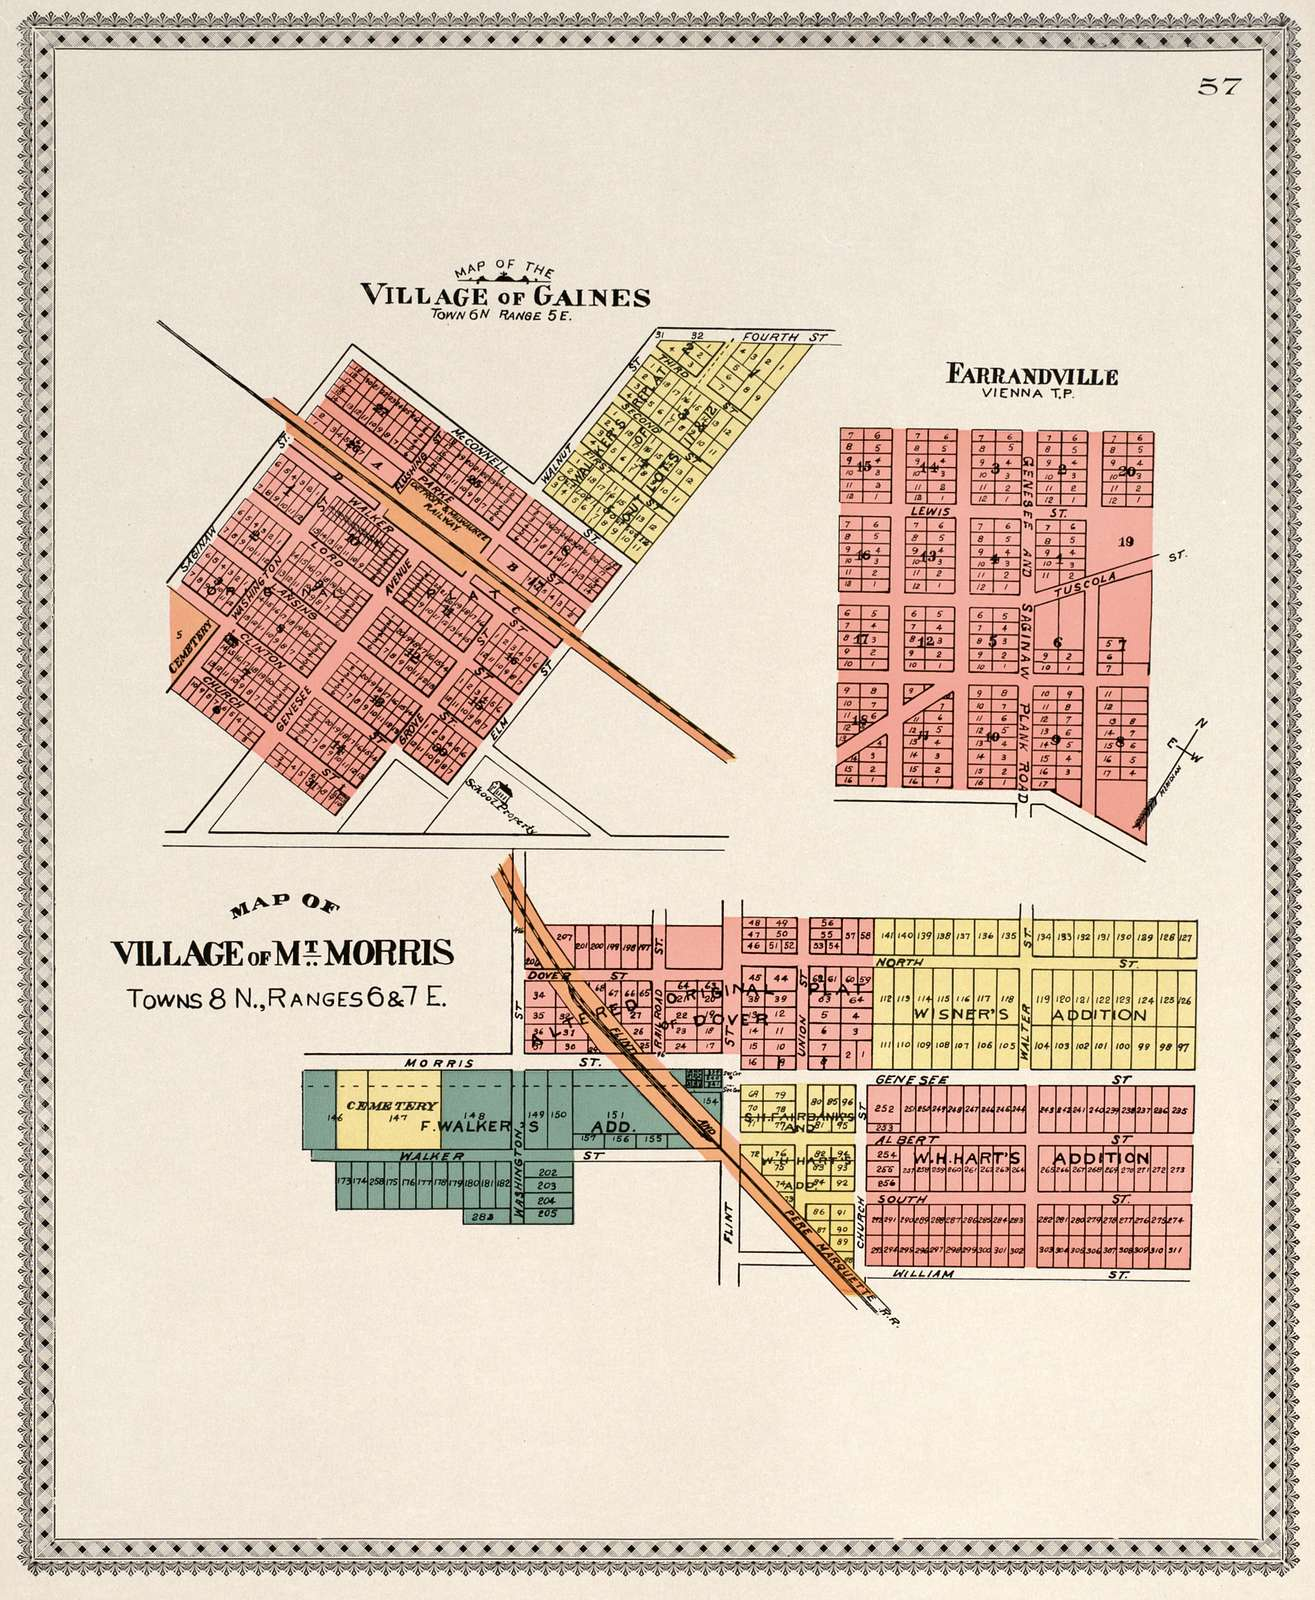 Atlas of Genesee County, Michigan : containing maps of every township in the county, with village and city plats, also maps of Michigan and the United States, from official records.